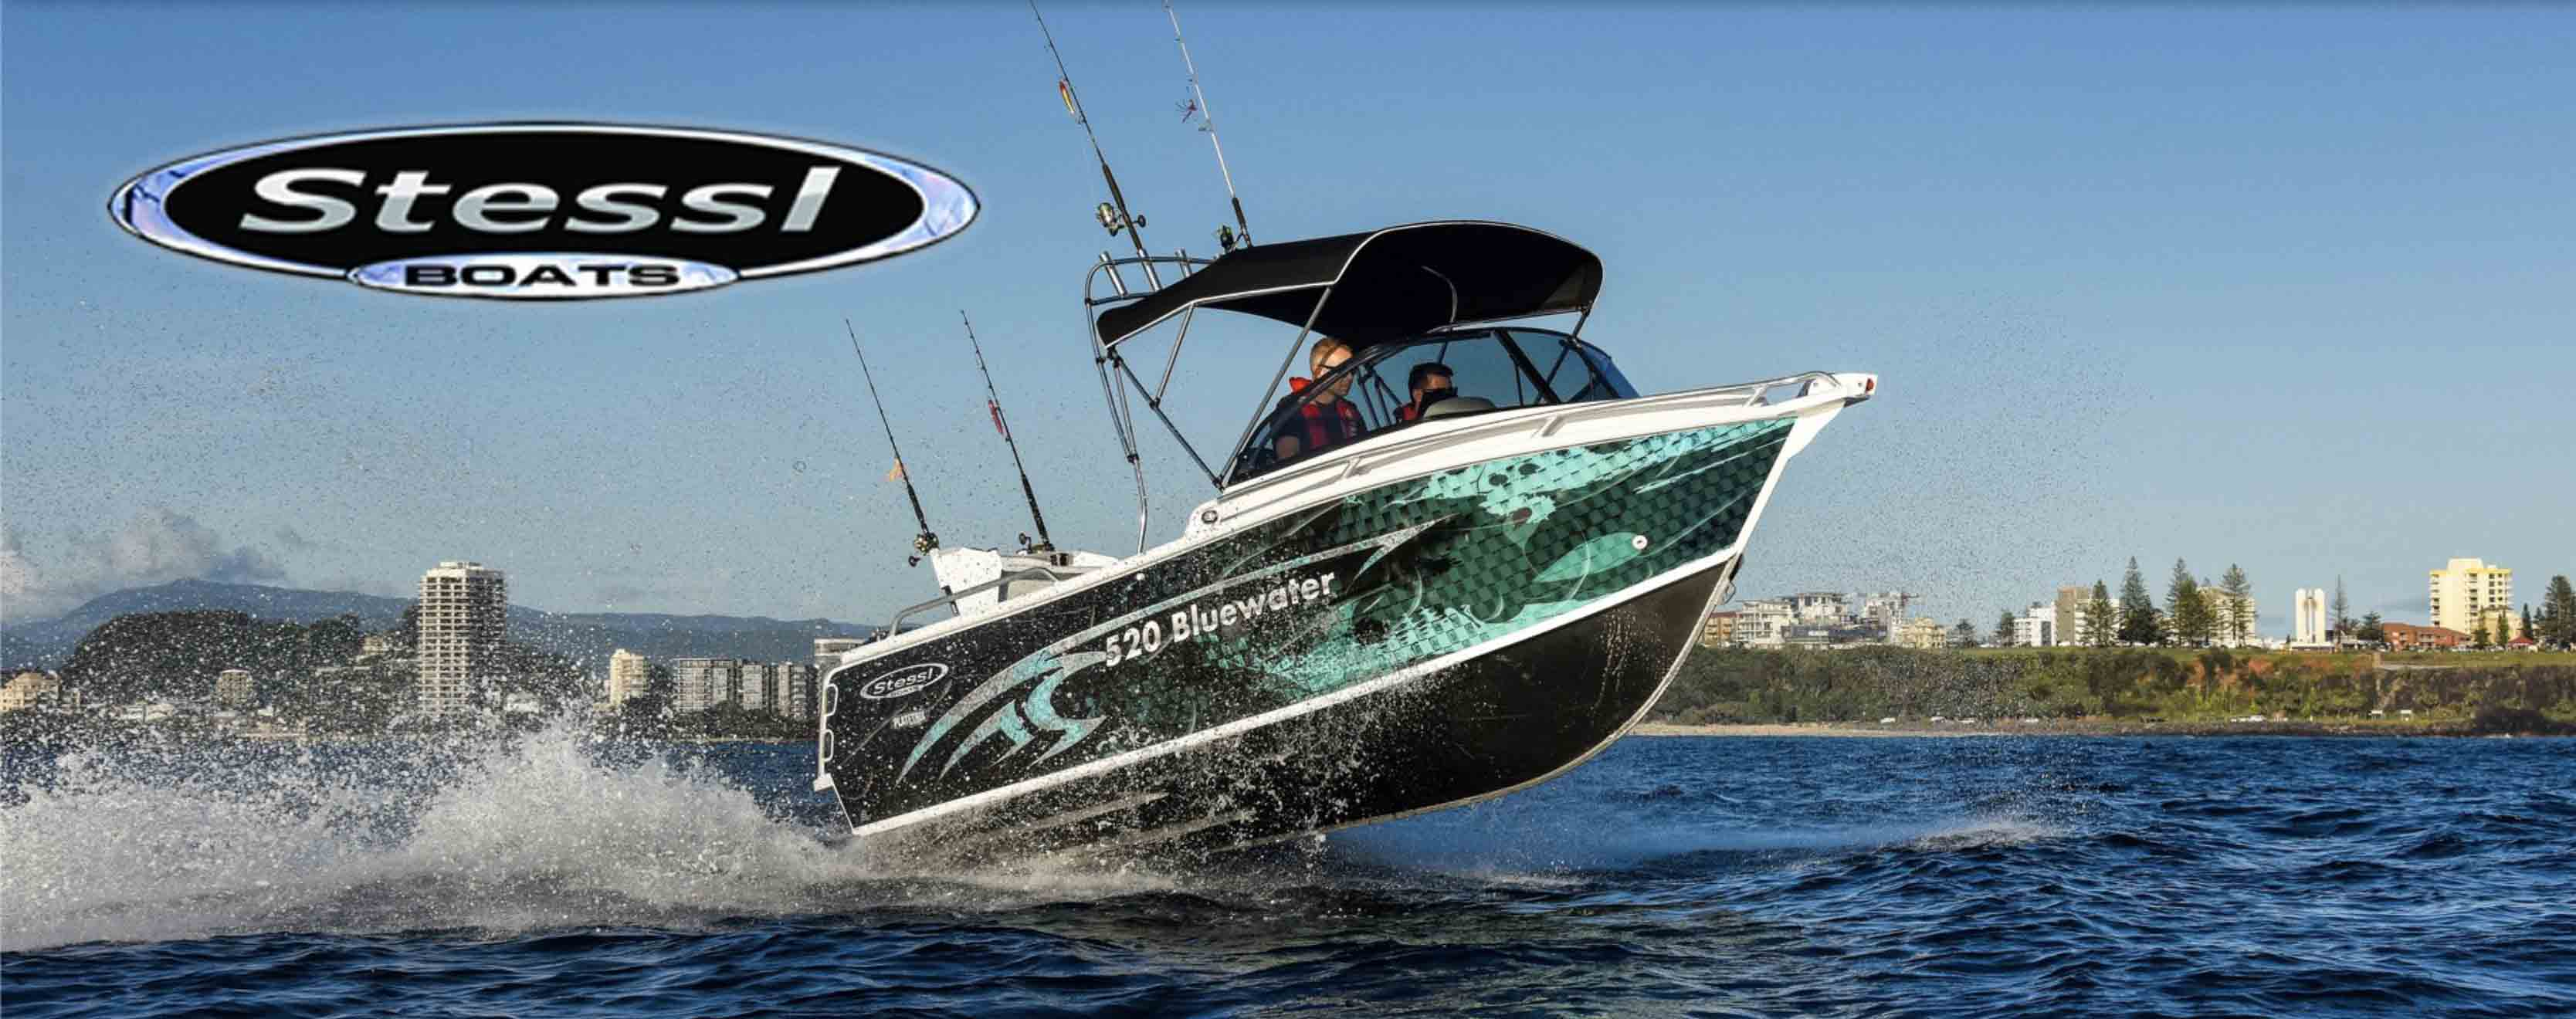 Gold Coast Boating Centre | Yamaha Outboards Sales and Service